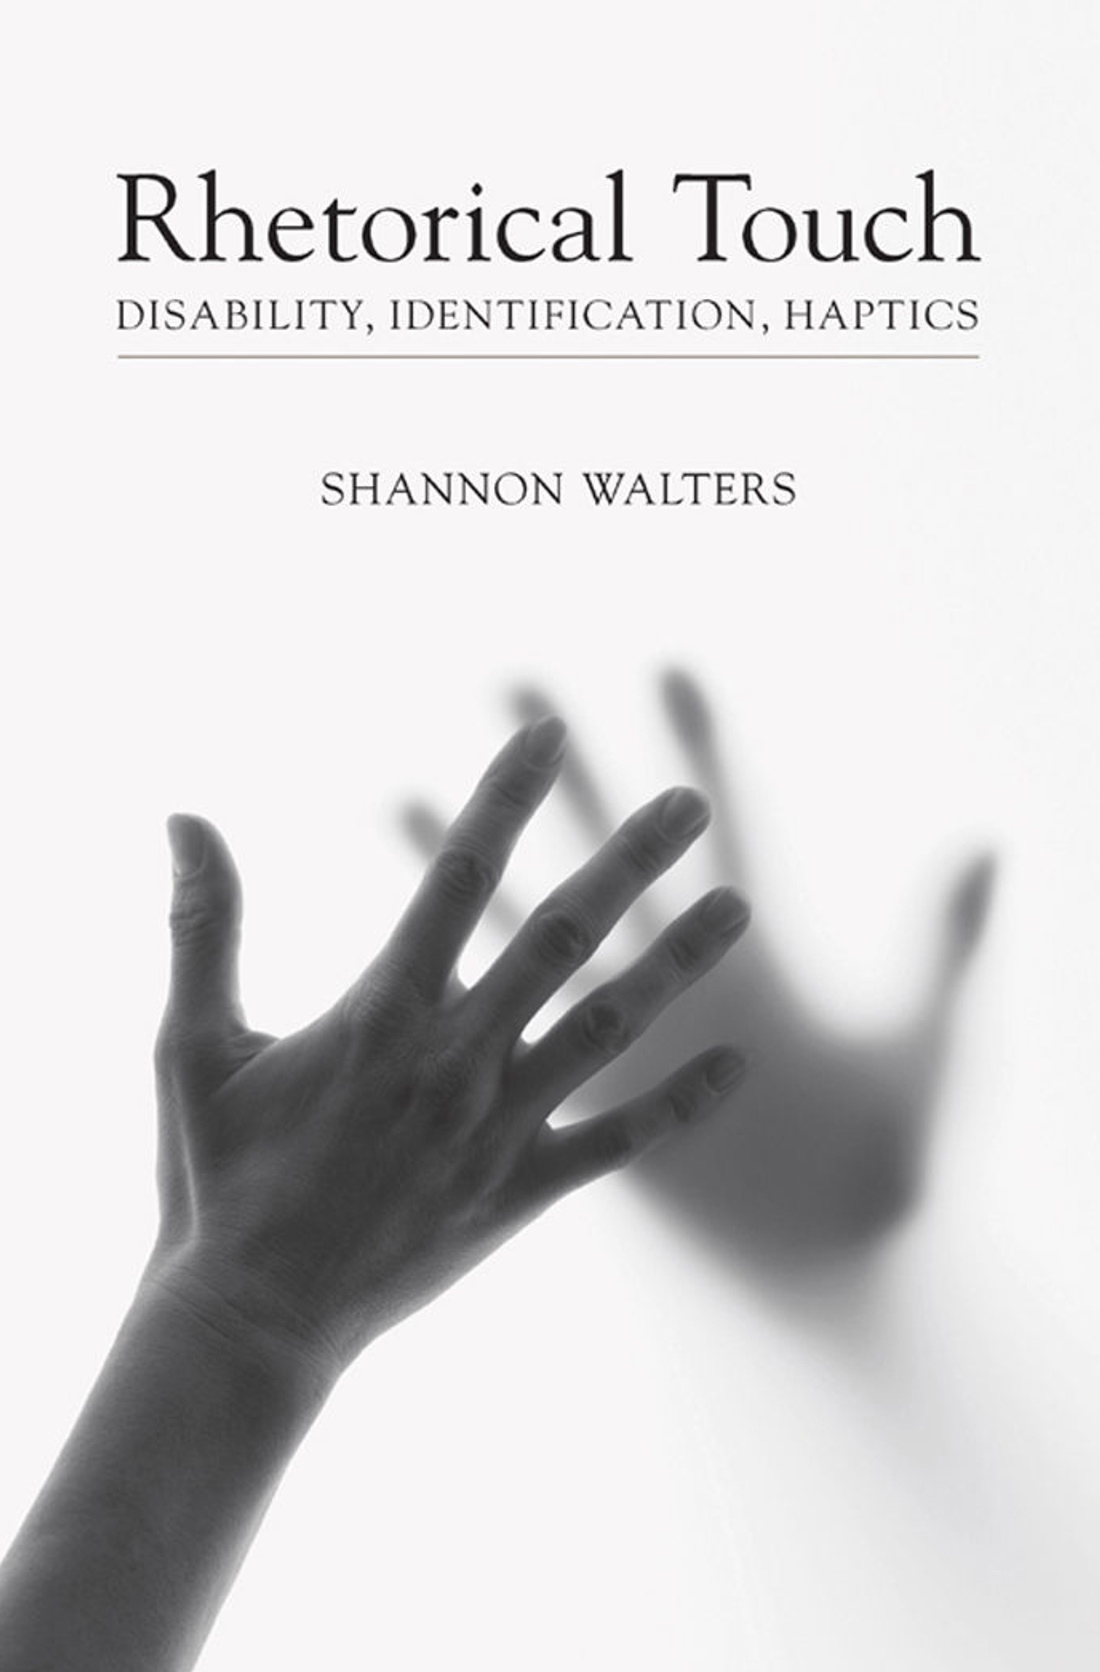 Cover of Rhetorical Touch: Disability, Identification, Haptics by Shannon Walters